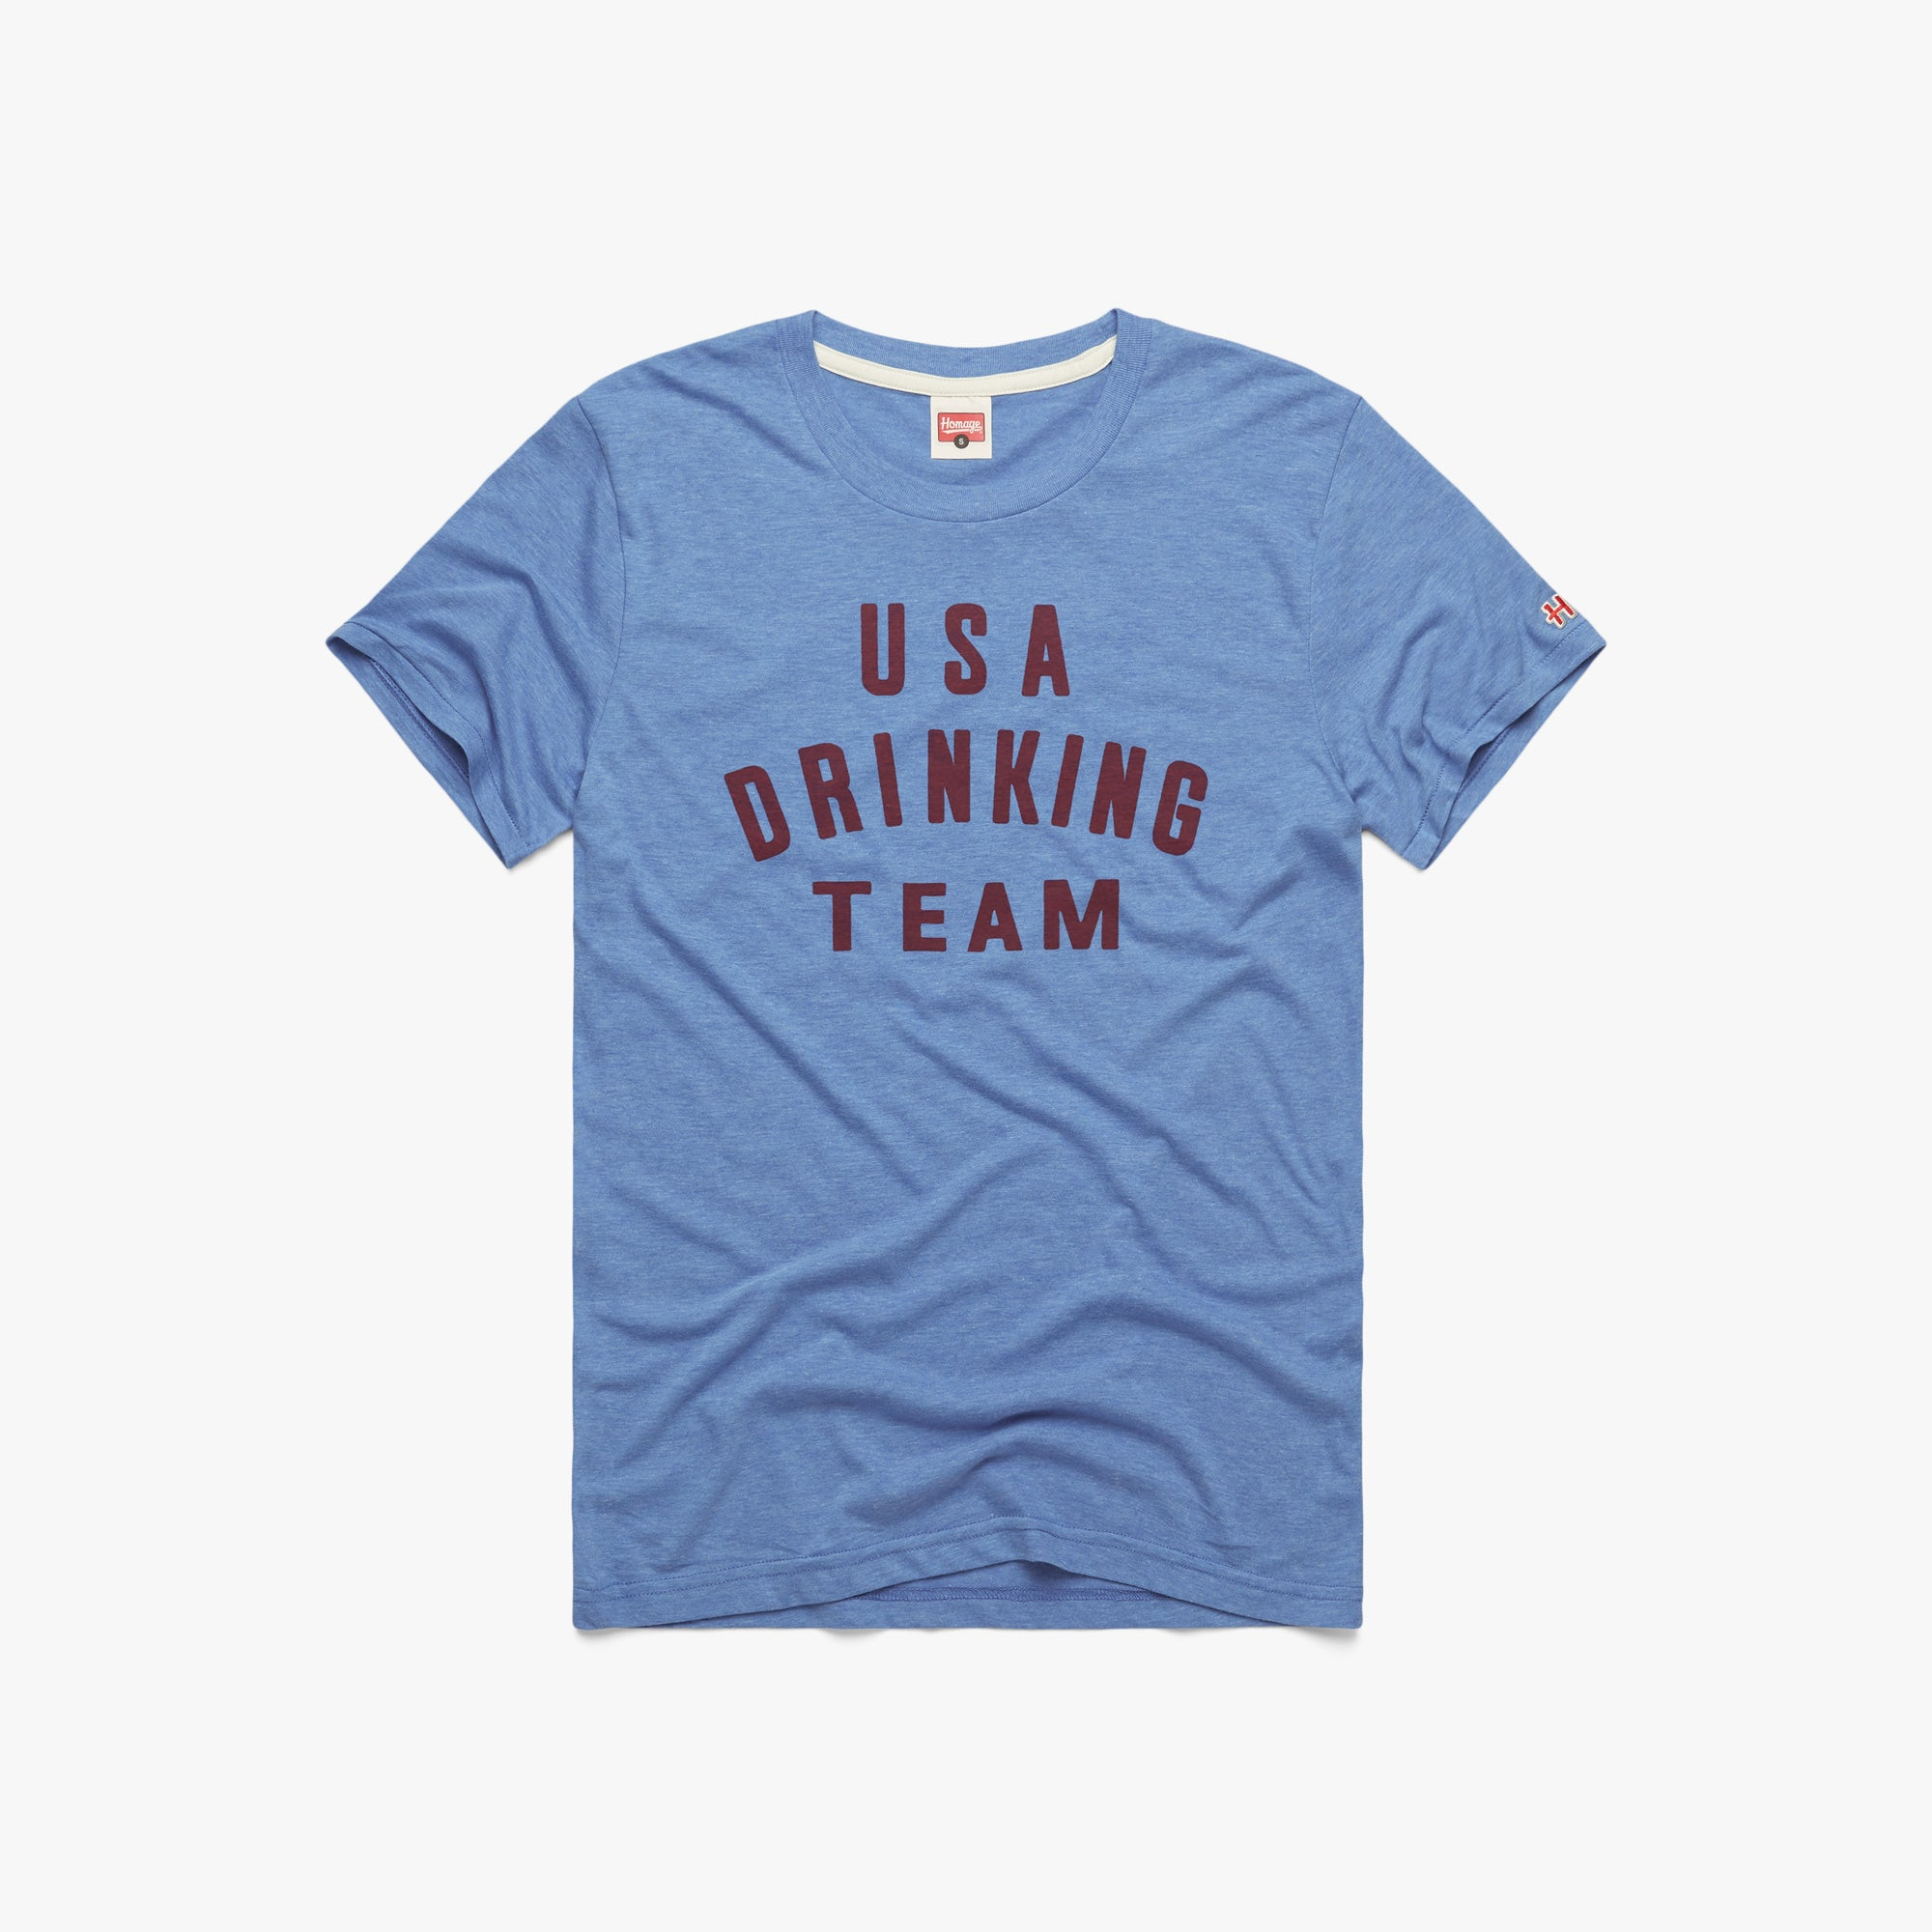 USA Drinking Team